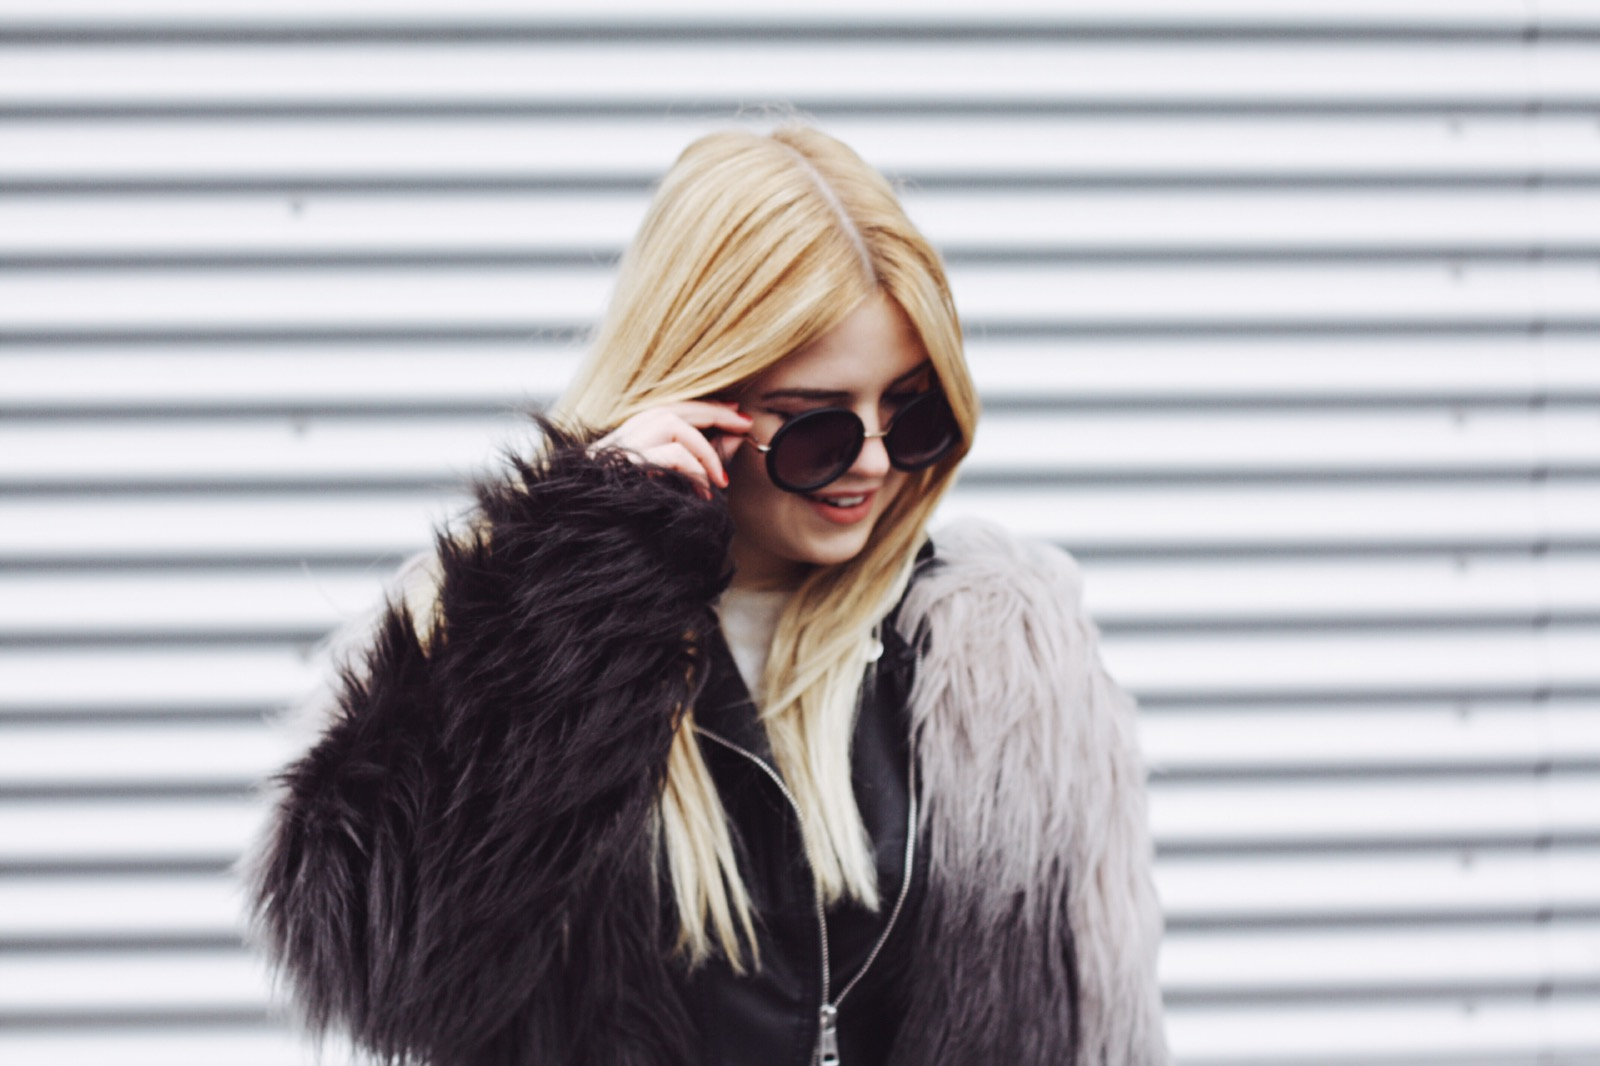 michelle_roessel_itsgoldie_fake_fur_jacke_ombre_hannover_hamburg_mode